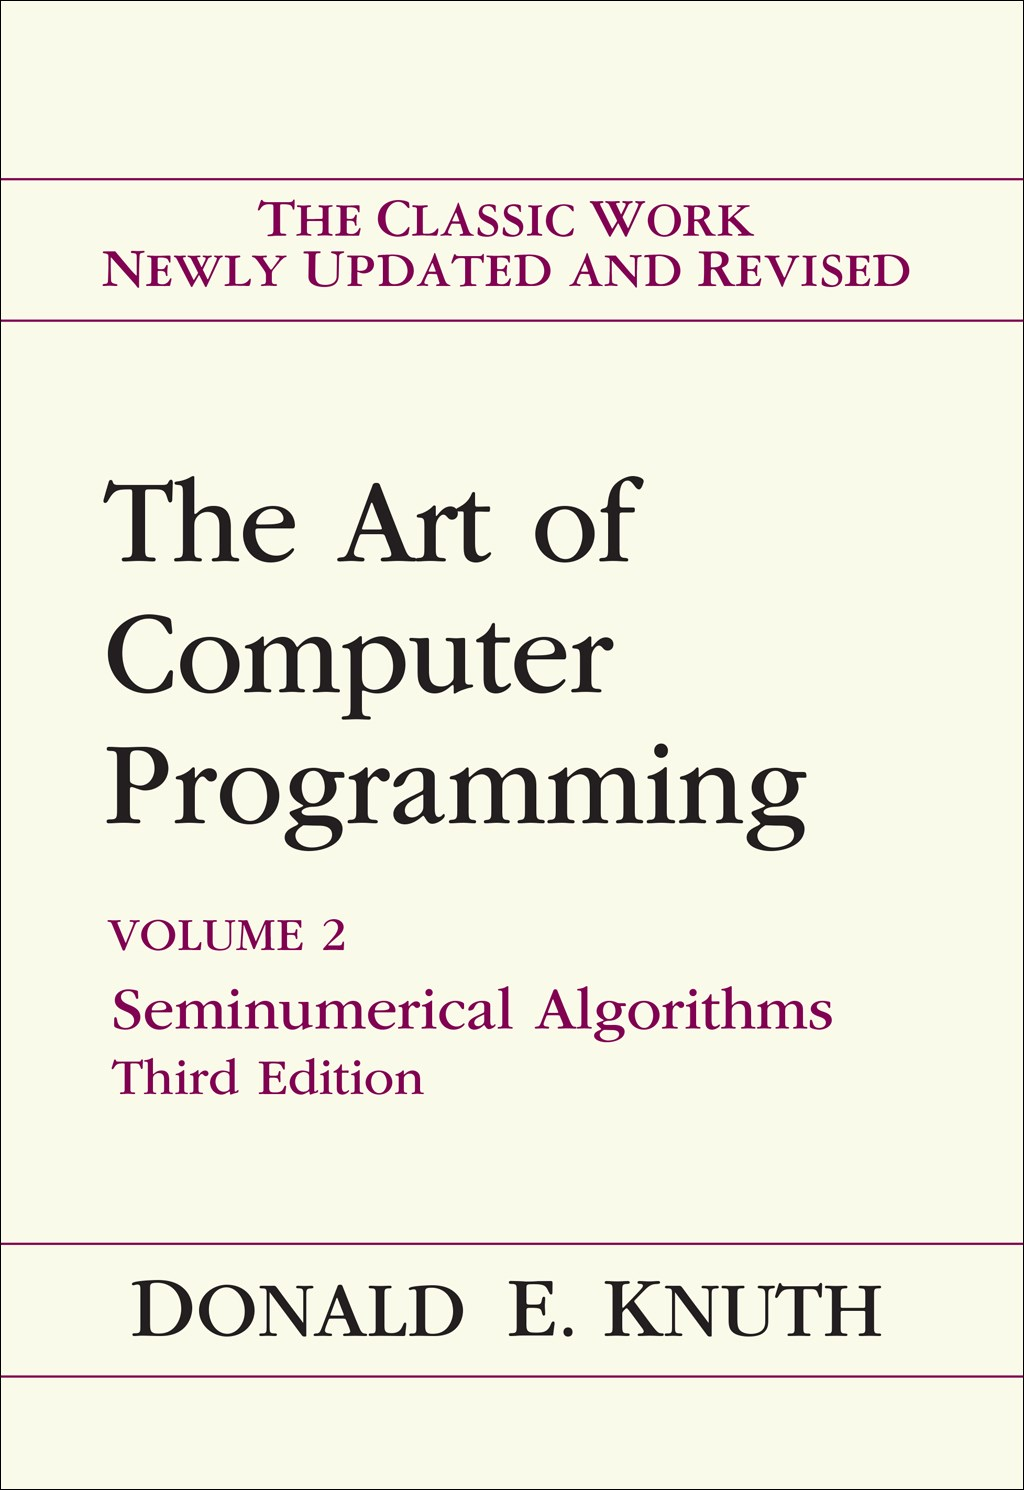 Art of Computer Programming, Volume 2: Seminumerical Algorithms, 3rd Edition